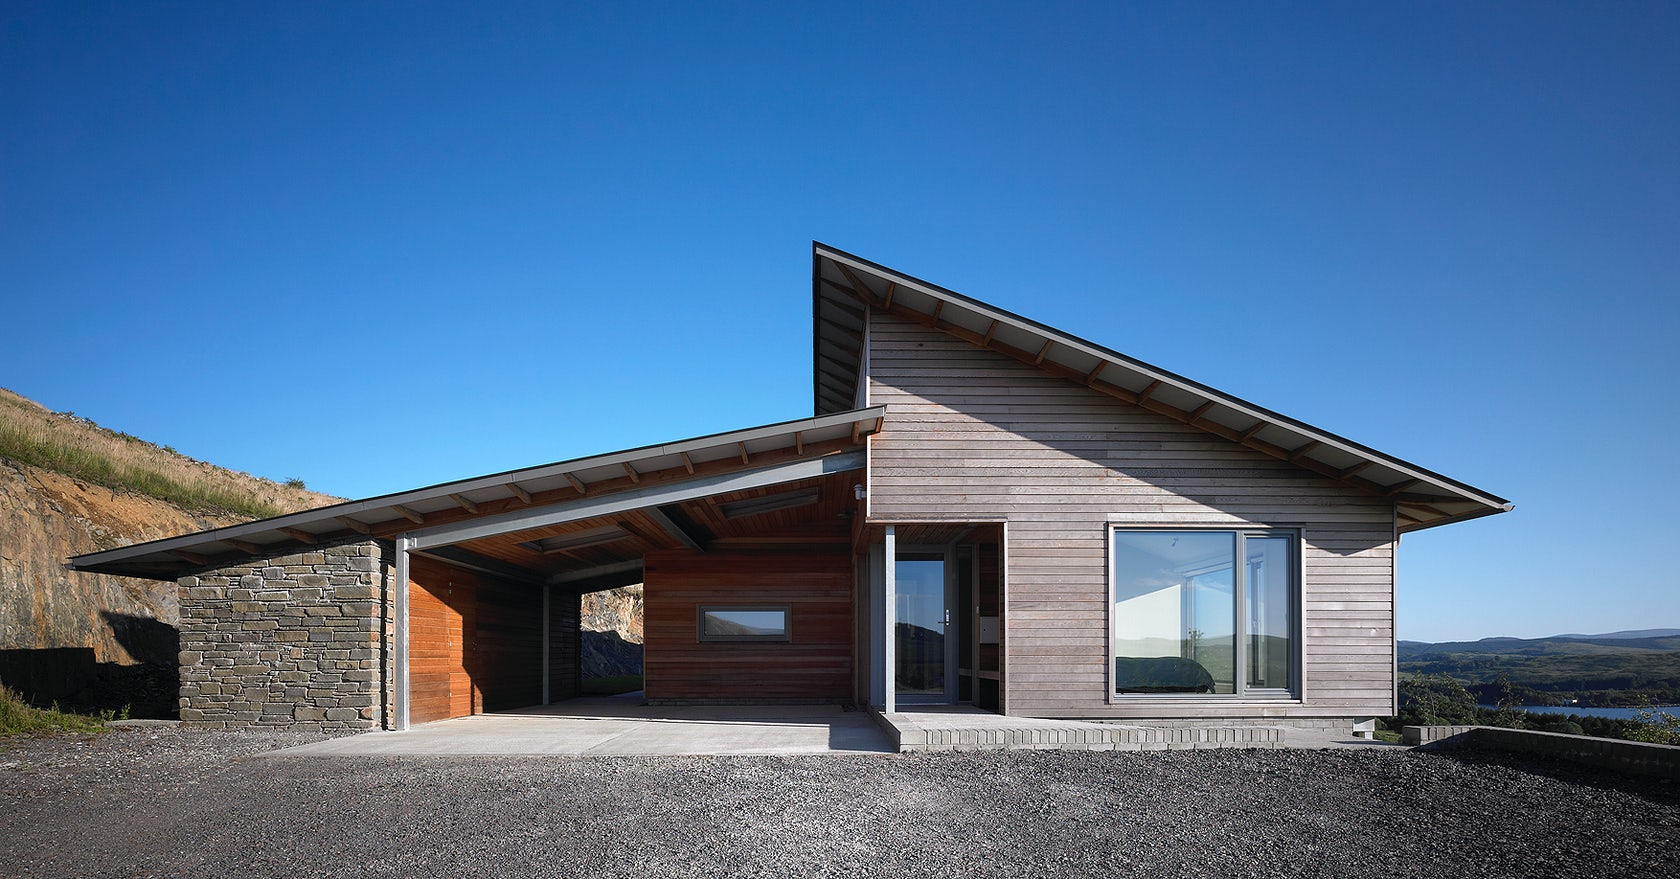 amblin' On: 10 ontemporary anch Homes - rchitizer - ^